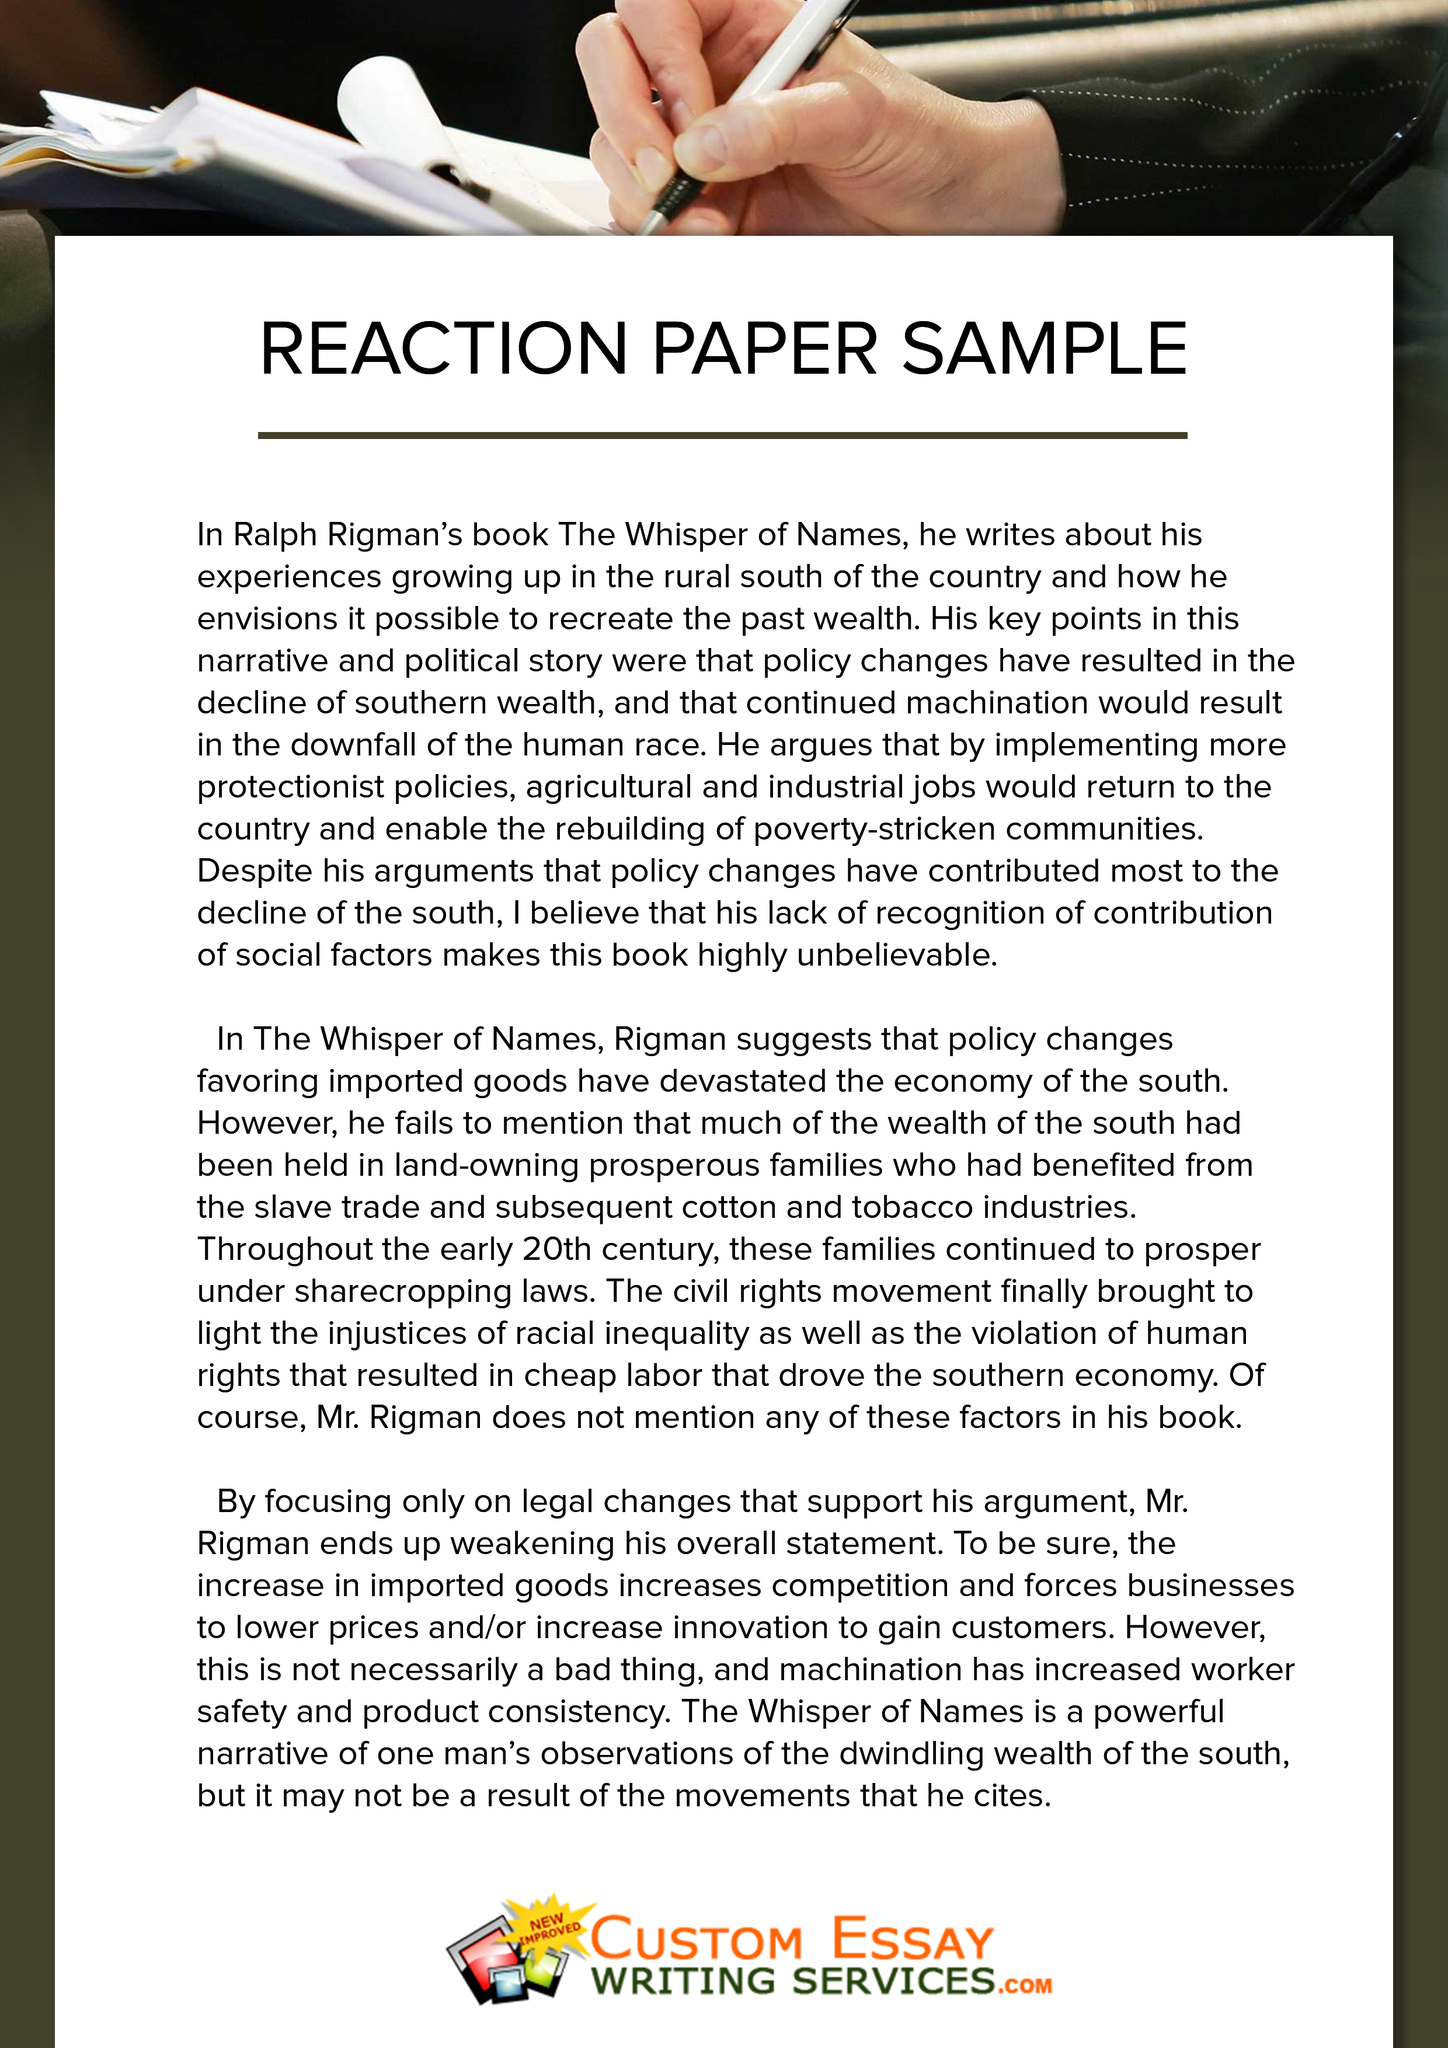 003 Writing Reaction Paper Sample Essay Top Example Full